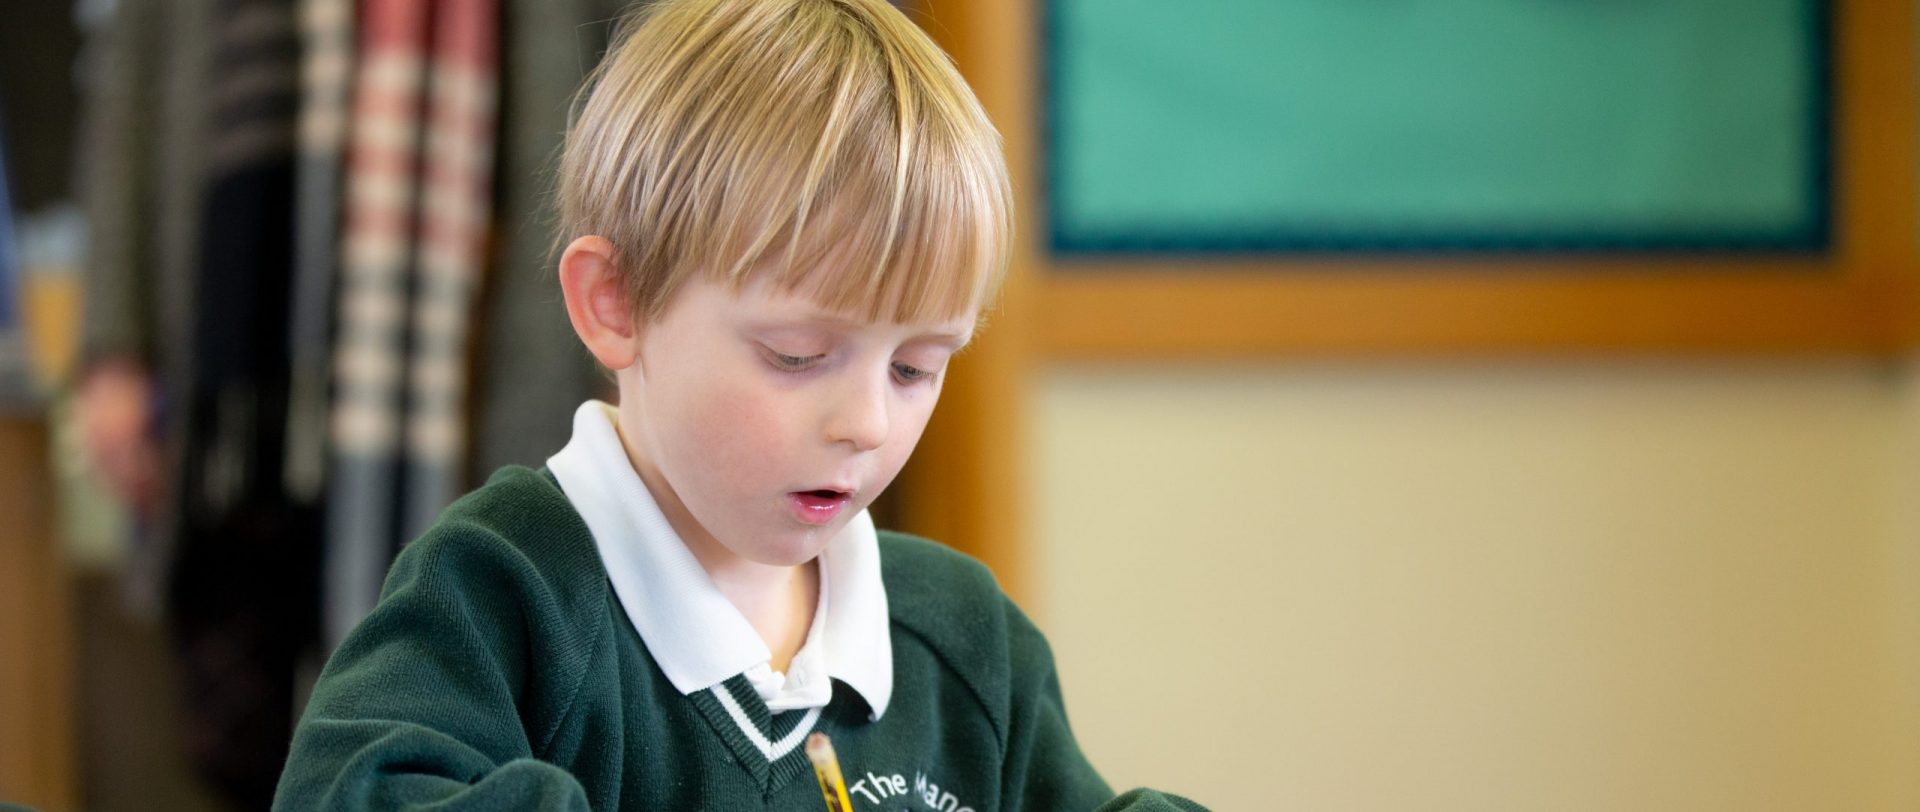 young child writing with a pencil at school